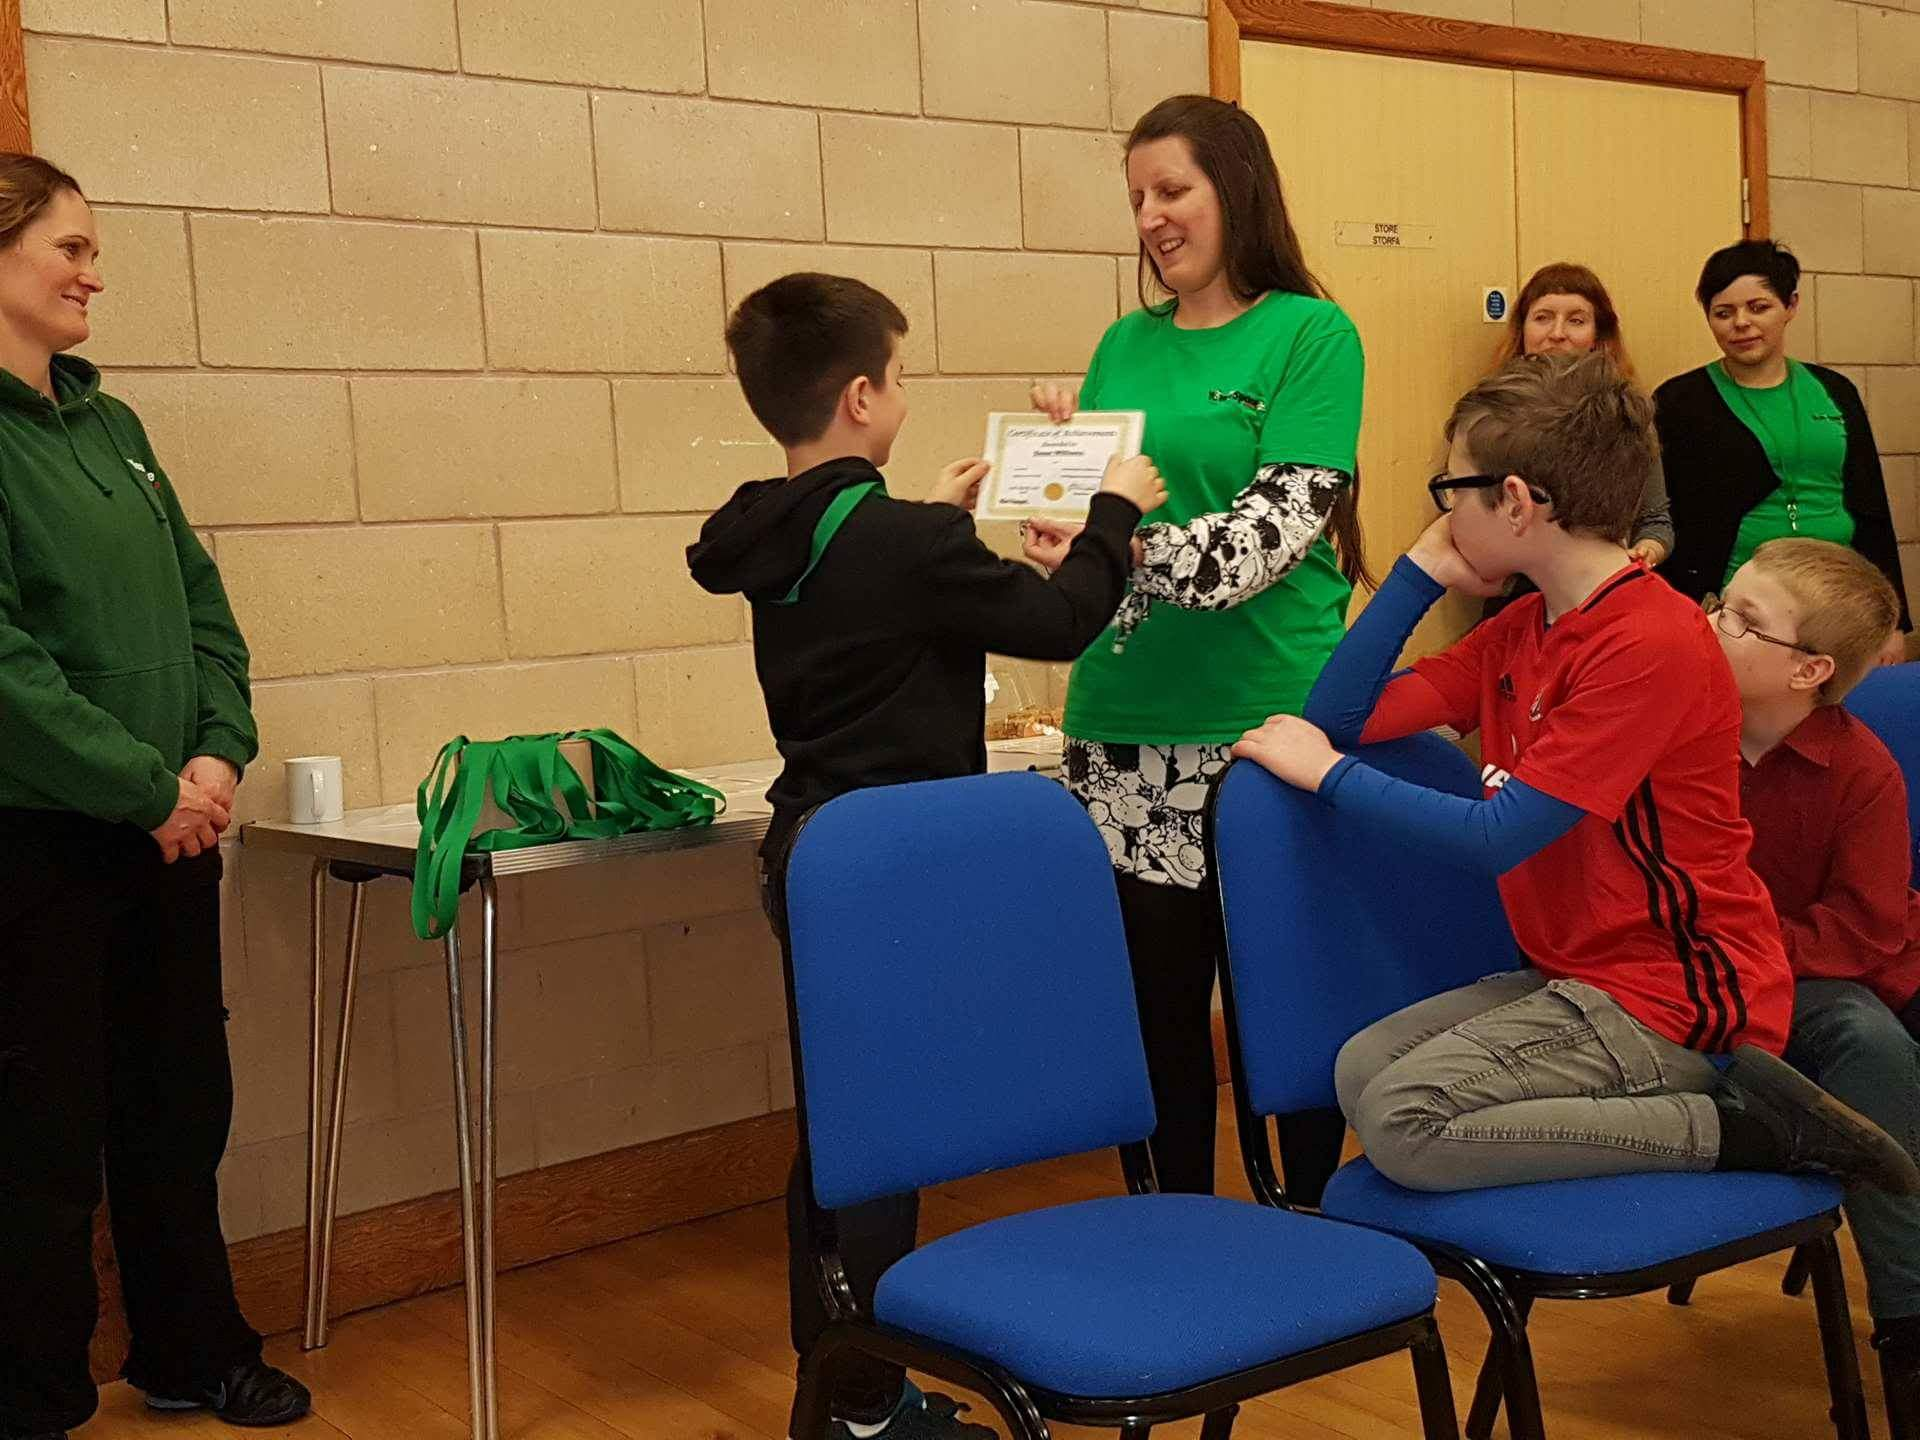 A boy receives his certificate